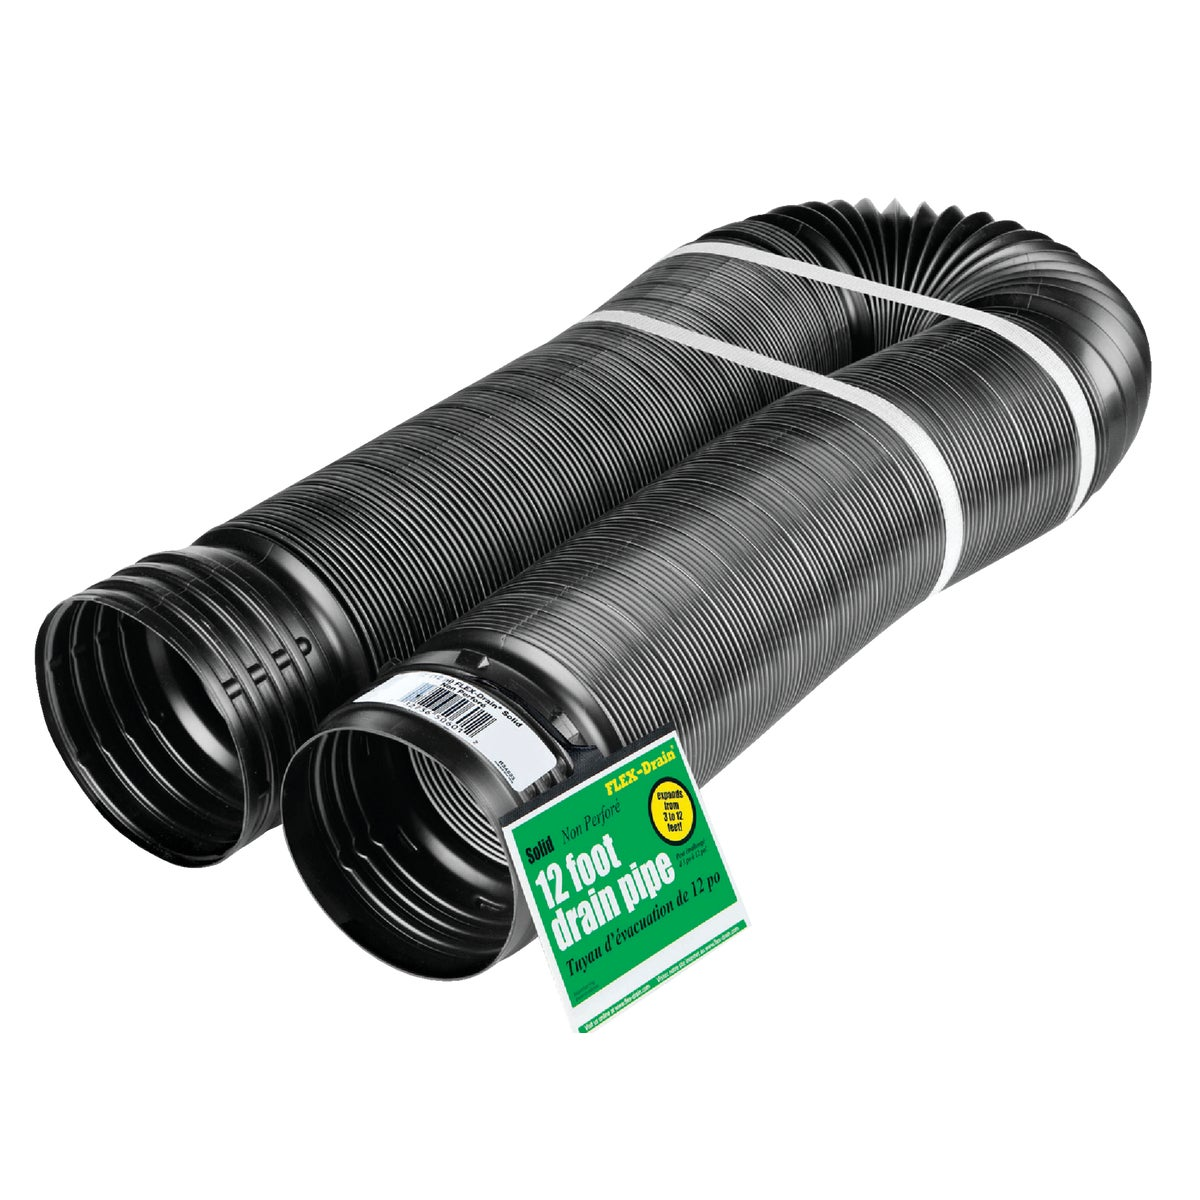 12' SOLID FLEX PIPE - 51710 by Cleveland Tubing Inc